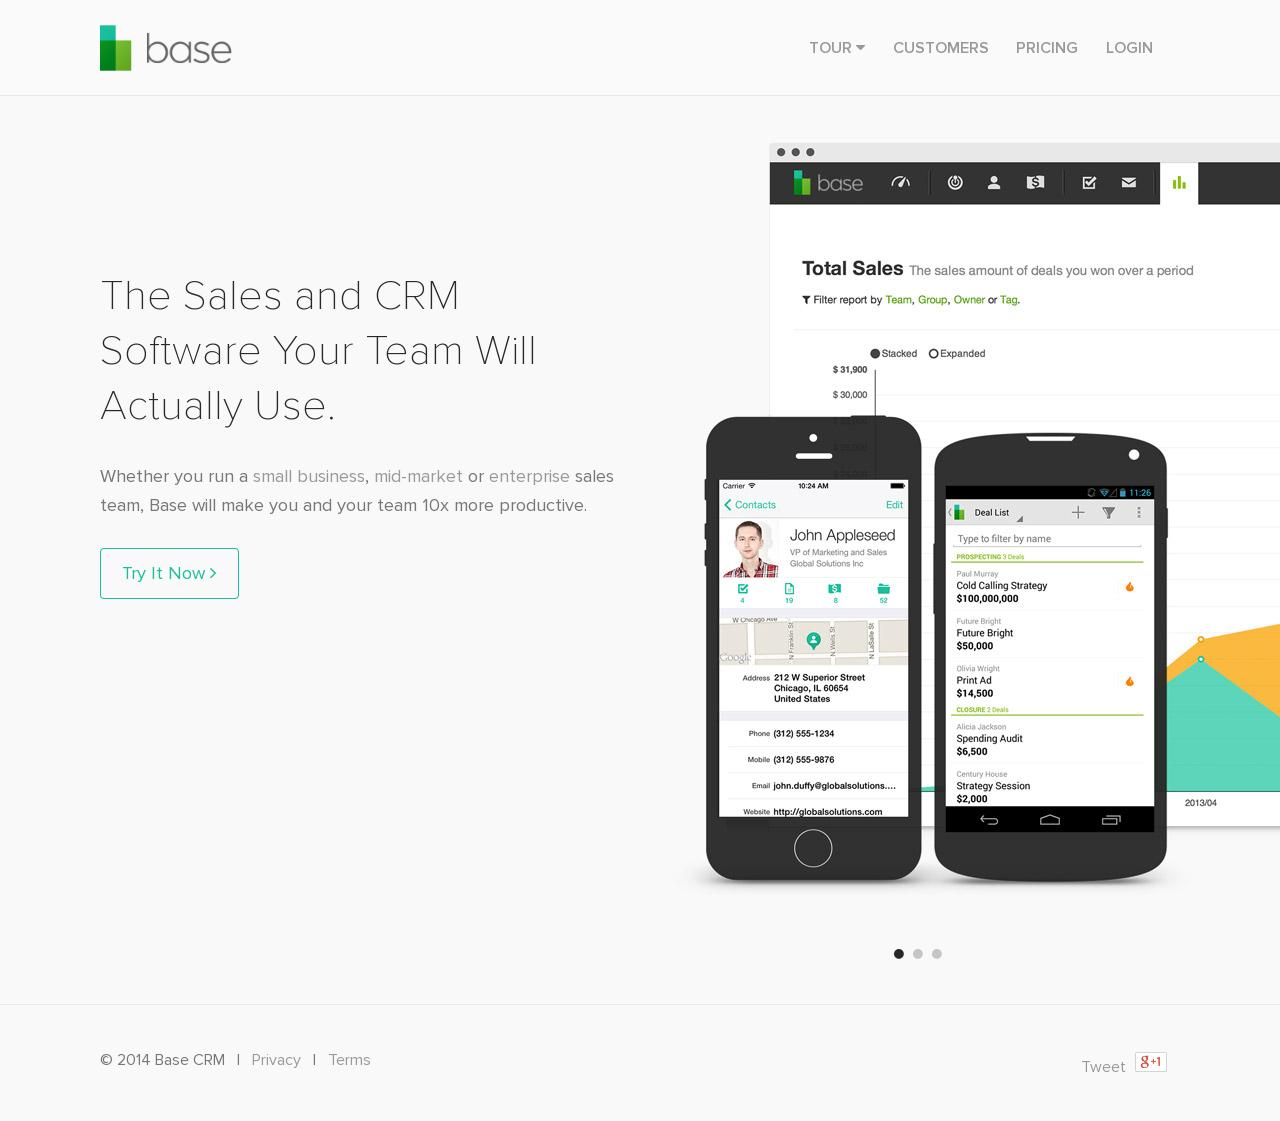 Screenshot of getbase.com - The Post-PC CRM | Base CRM - captured July 10, 2014